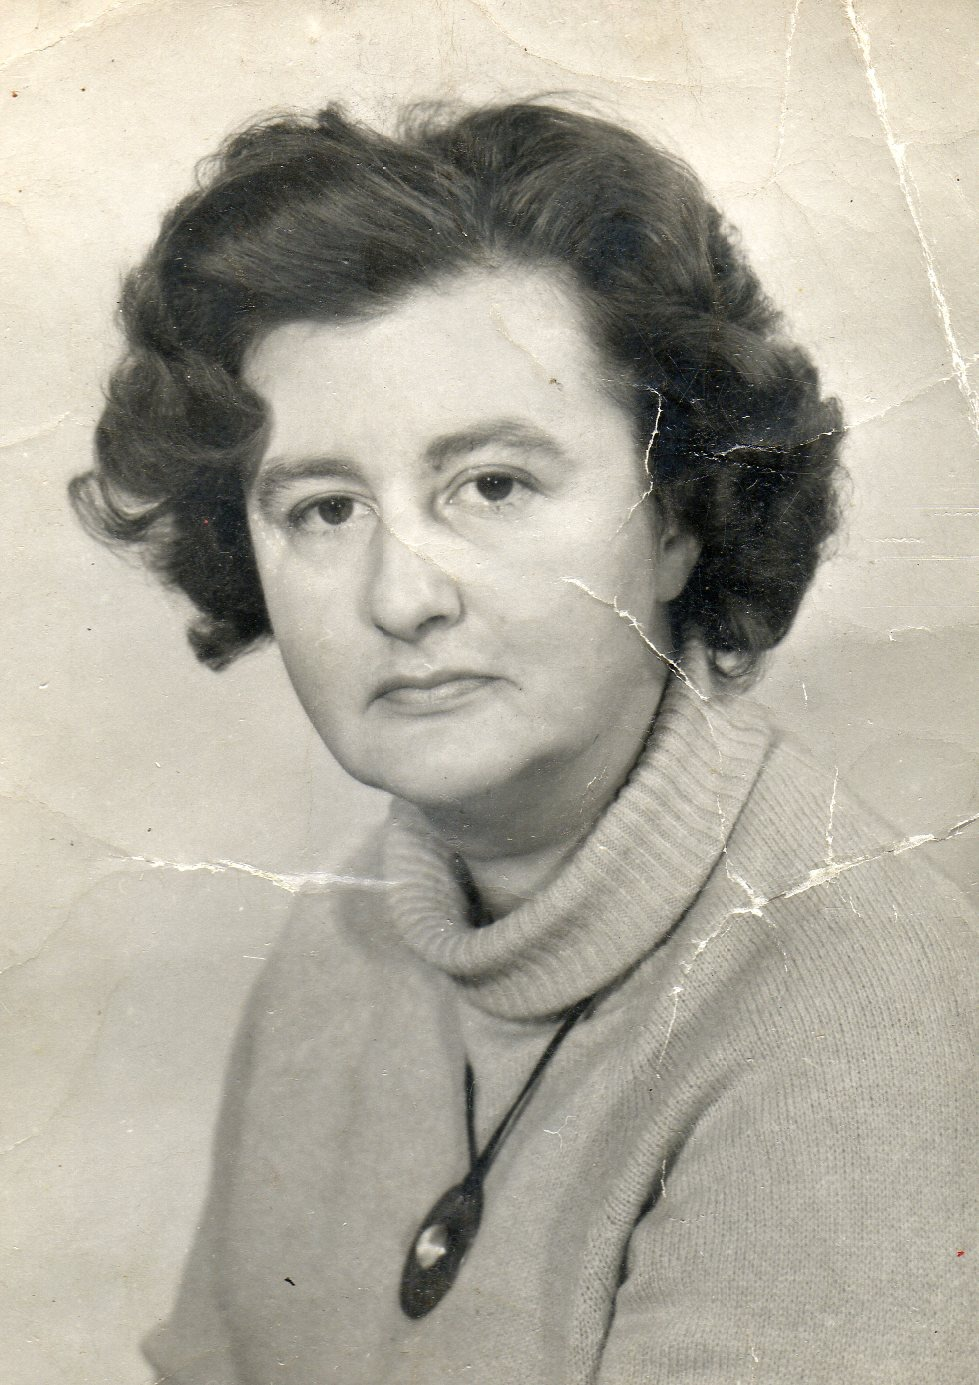 Photograph taken of June Almeida in 1968